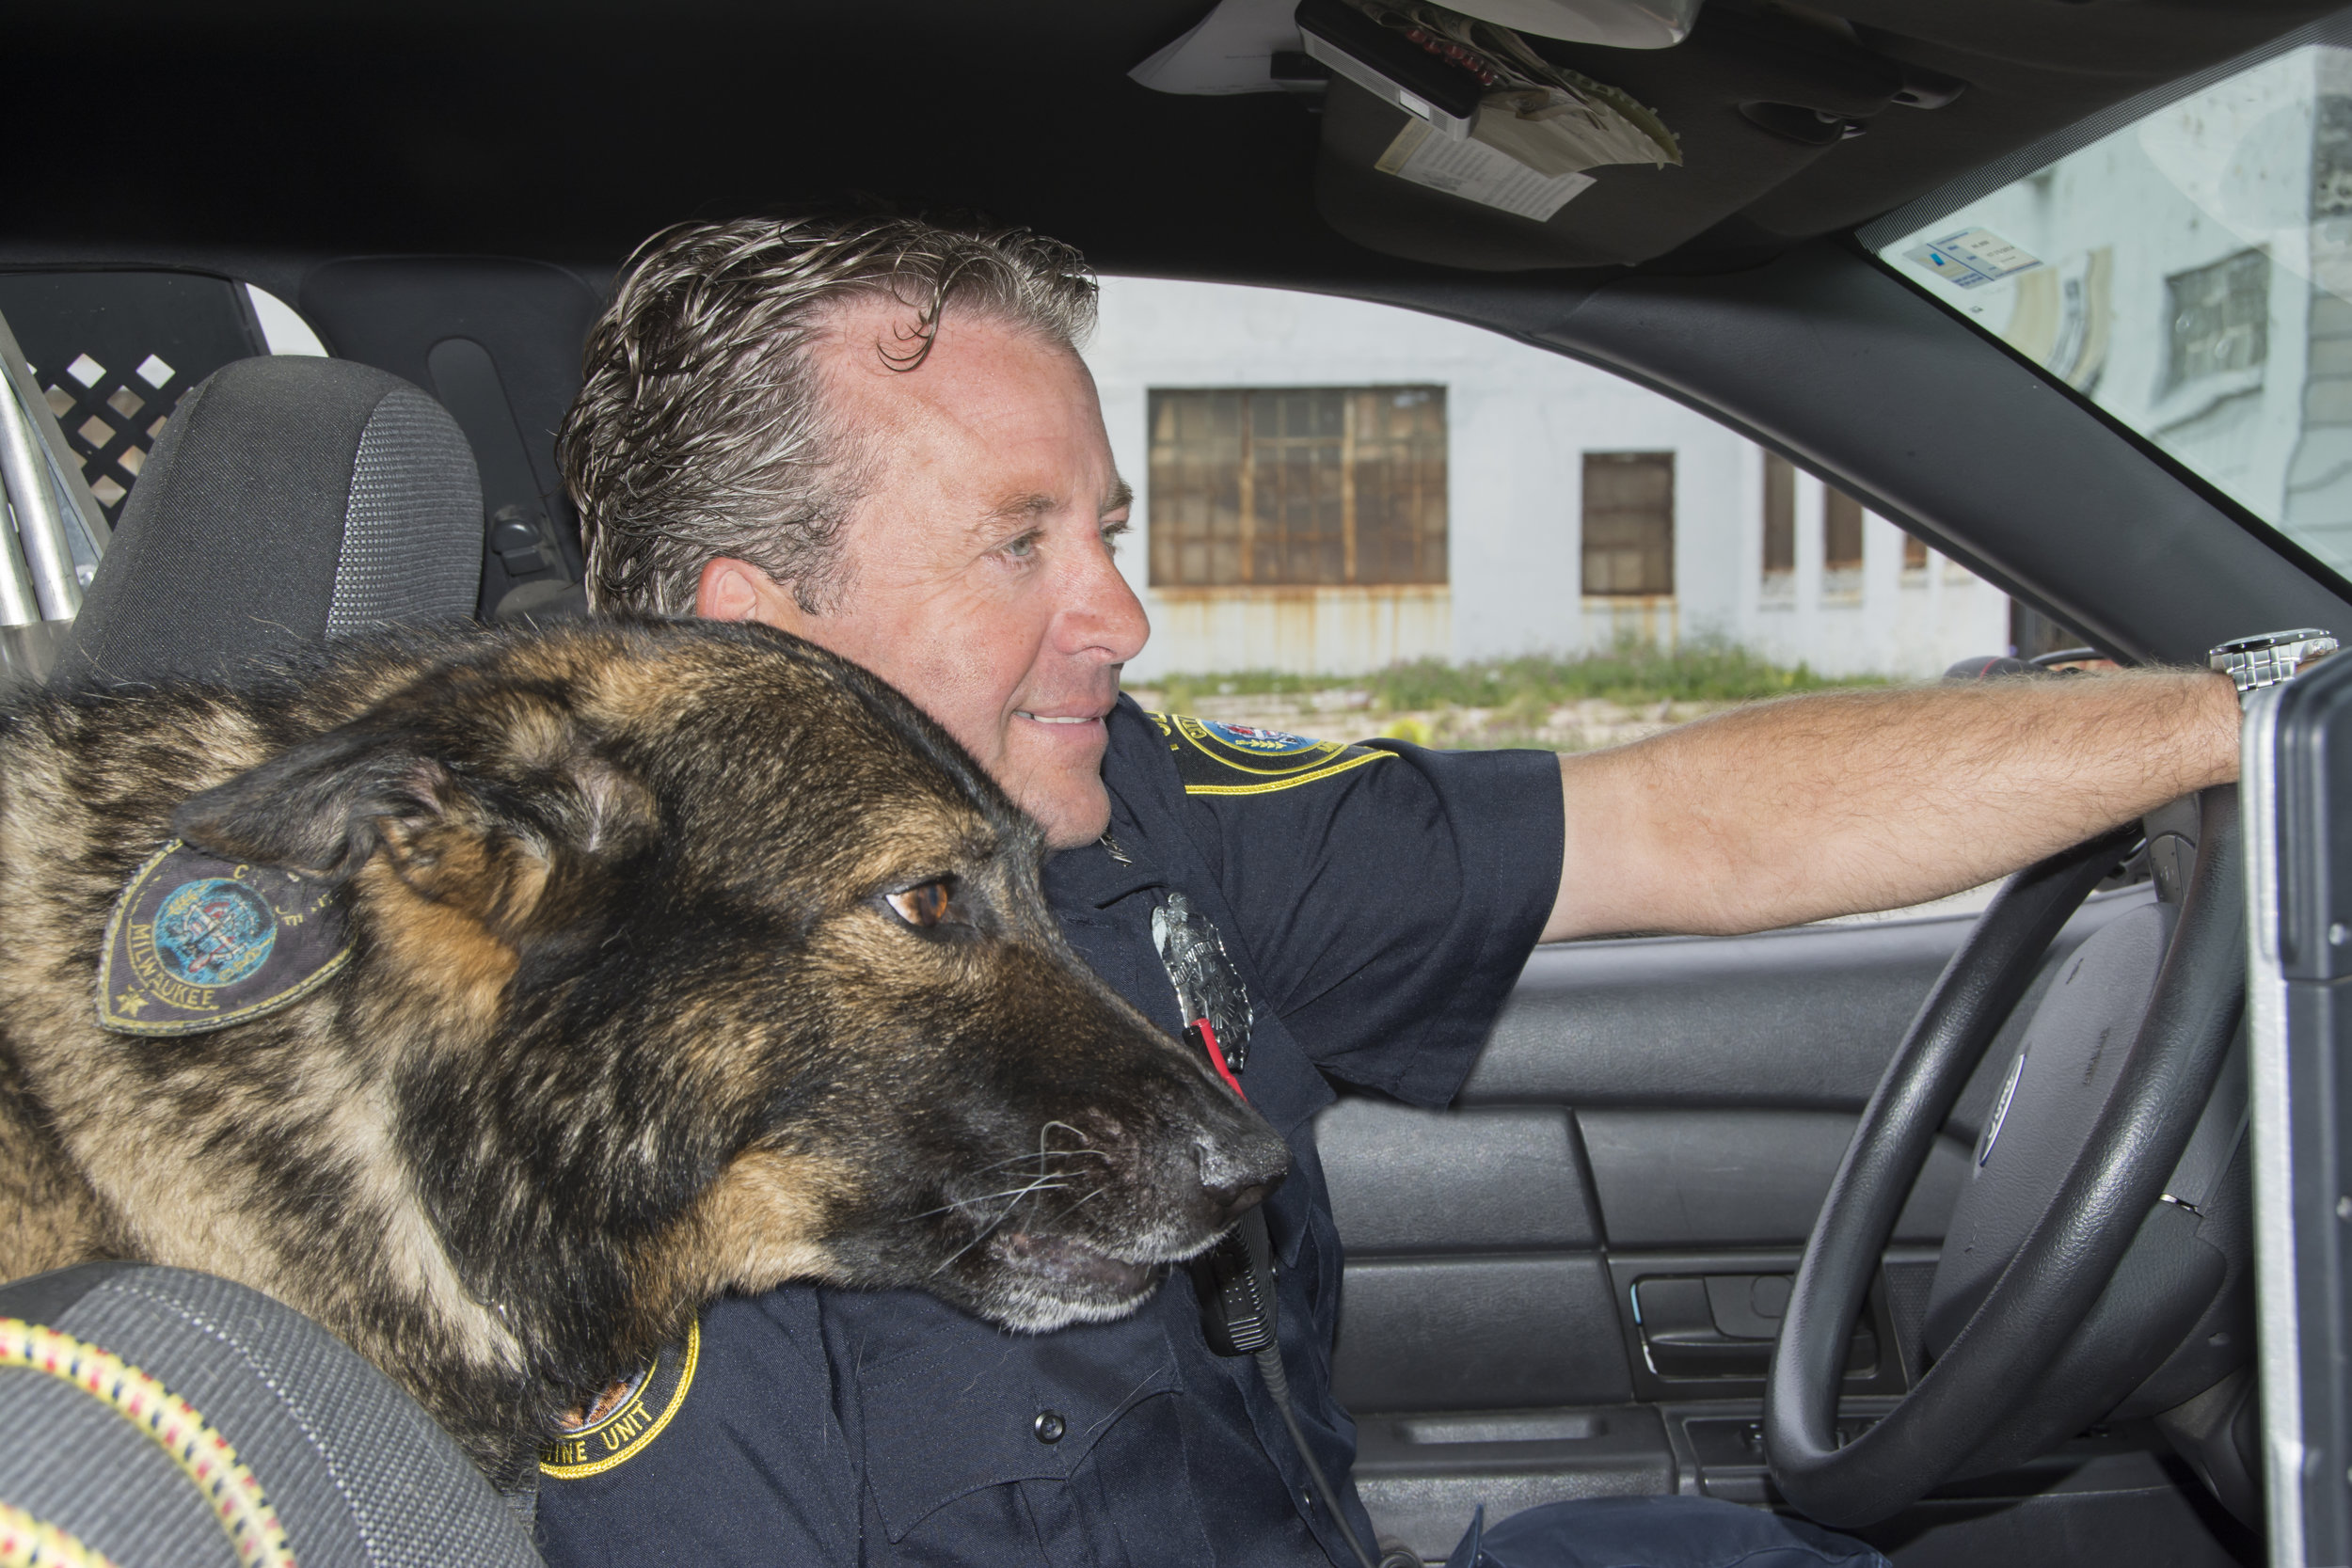 """In a dangerous Milwaukee neighborhood,I met the policeman, Todd Johnson, and his police dog, Dasty, who lives with Officer Johnson and his family. I asked, """"Is Dasty's job to sniff out drugs?"""" He said, """"Dasty has two jobs. Find drugs and chase the bad guys."""" I said, """"Has Dasty ever caught a bad guy?"""" He nodded. """"More bad guys than I can count. Dasty's 10 years old. He's seen a lot of action."""""""